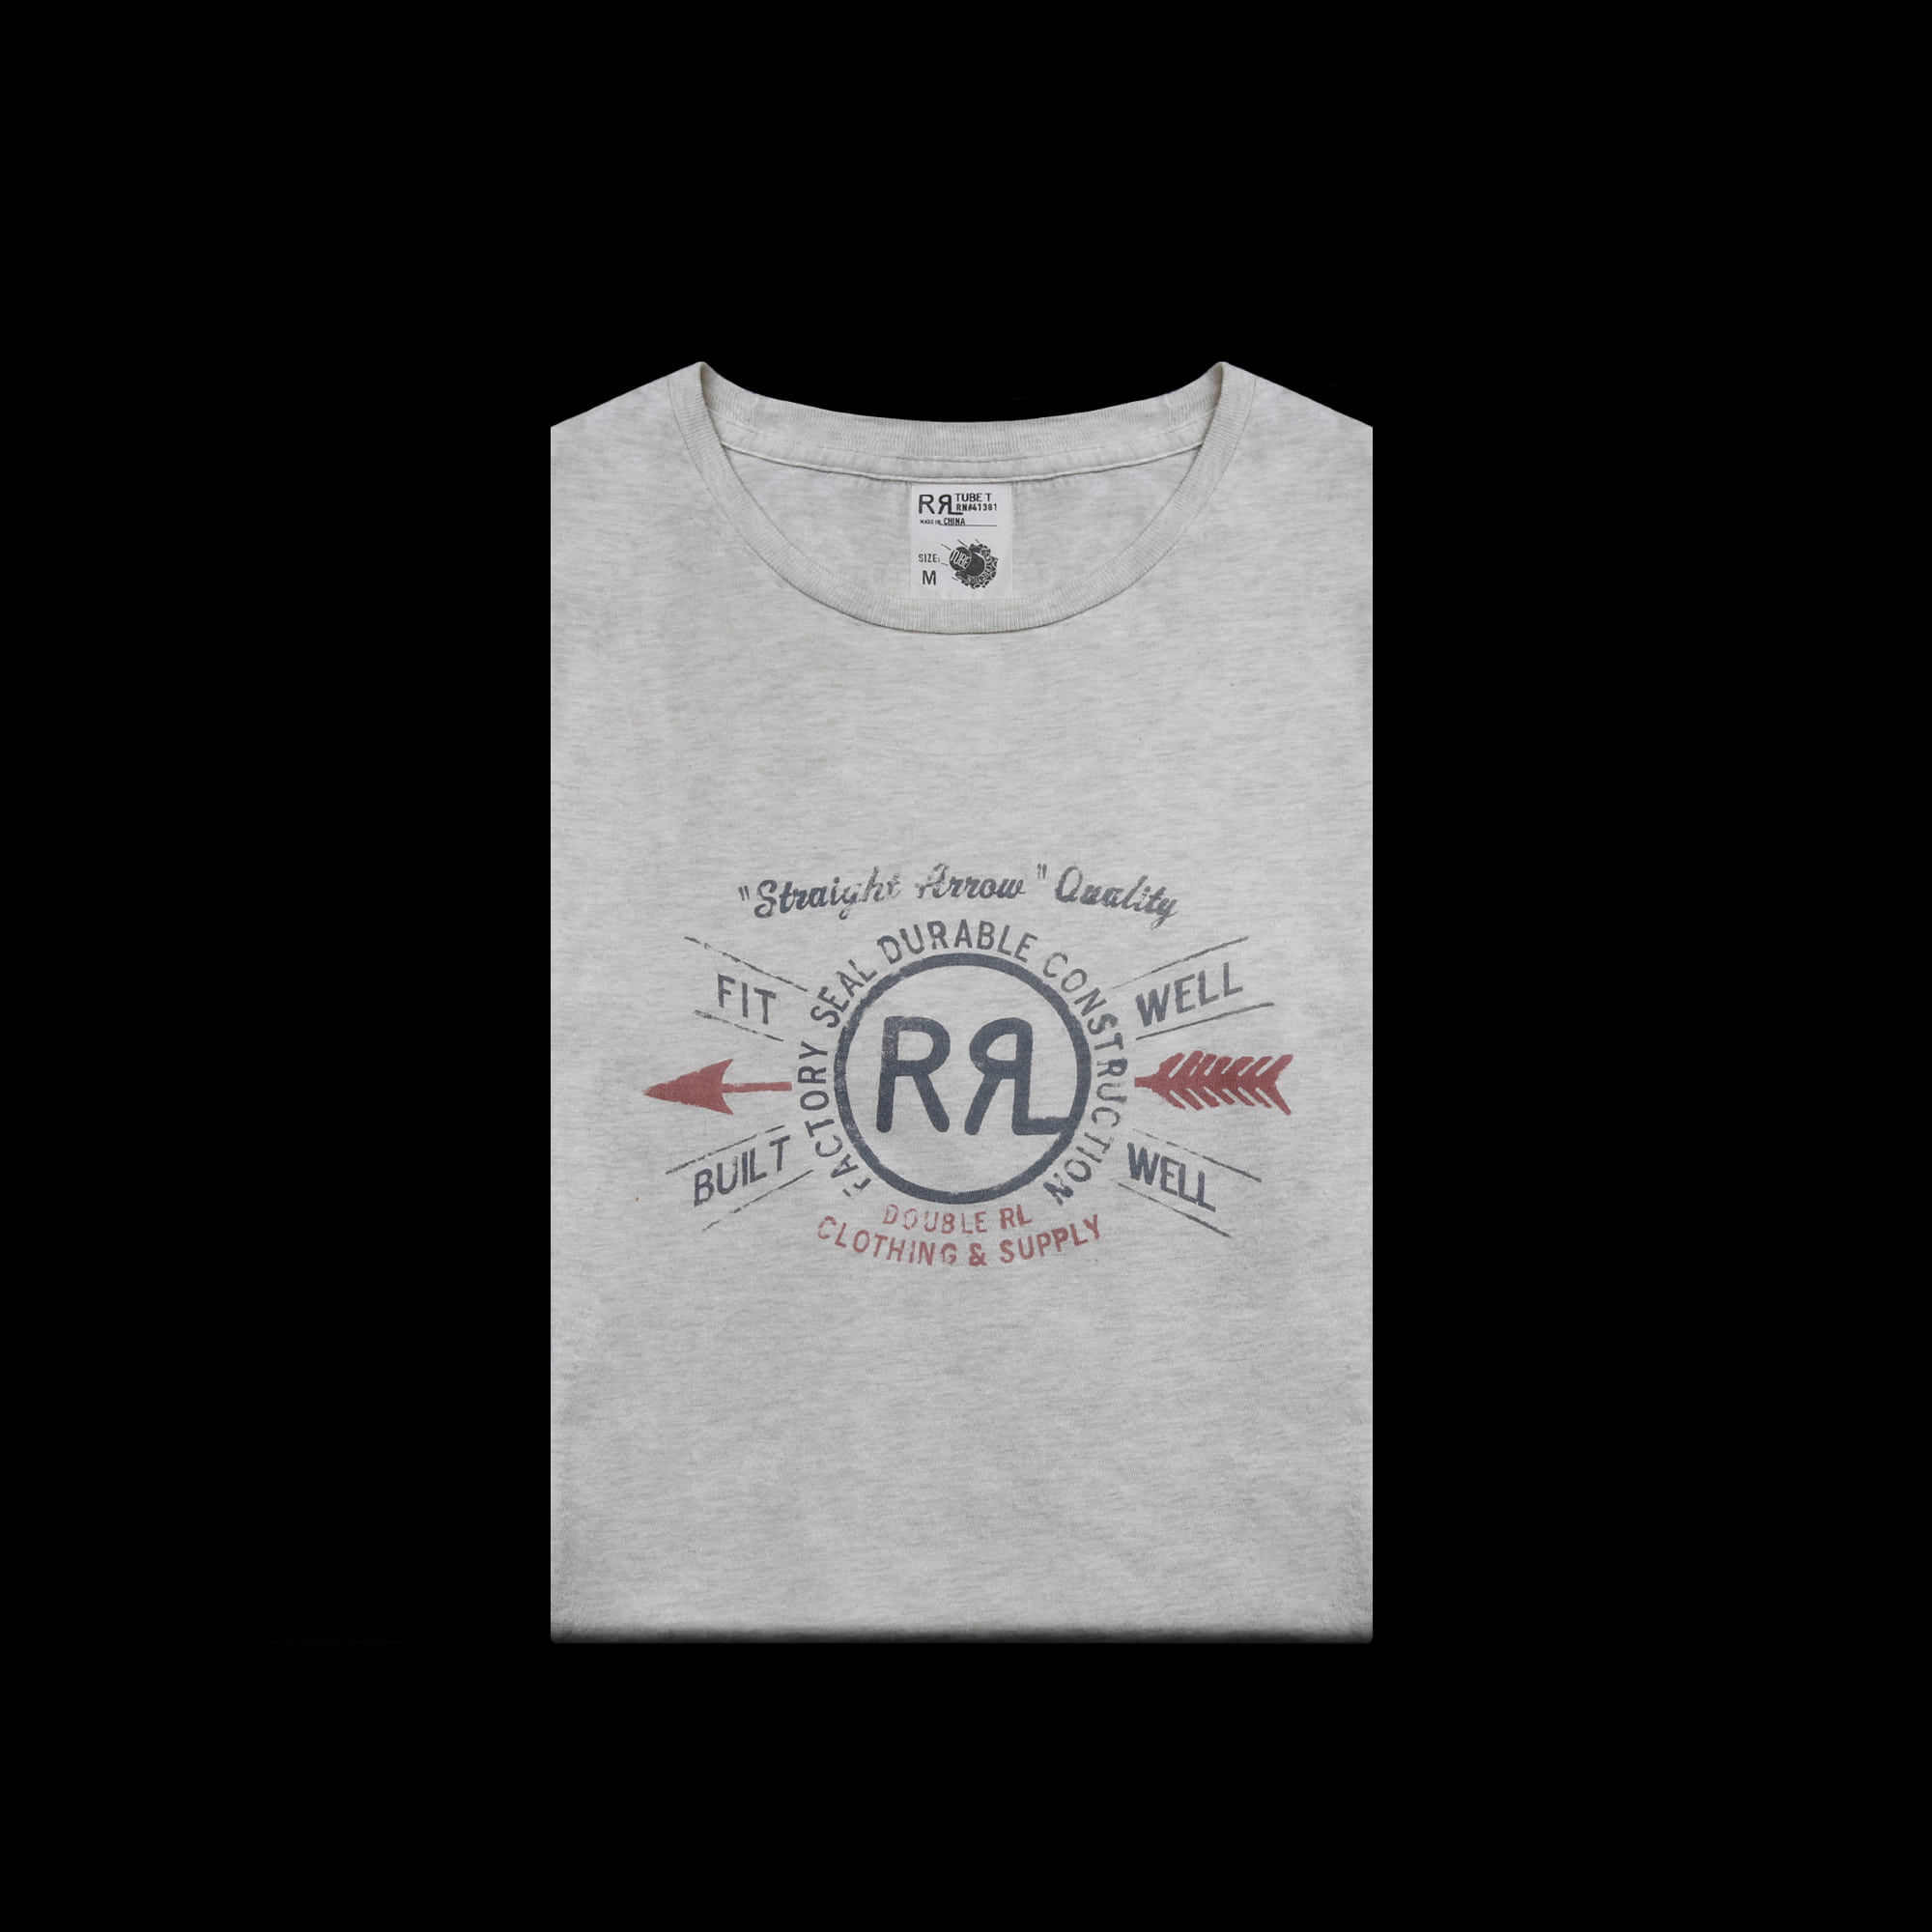 RRLCOTTON JERSEYT-SHIRT